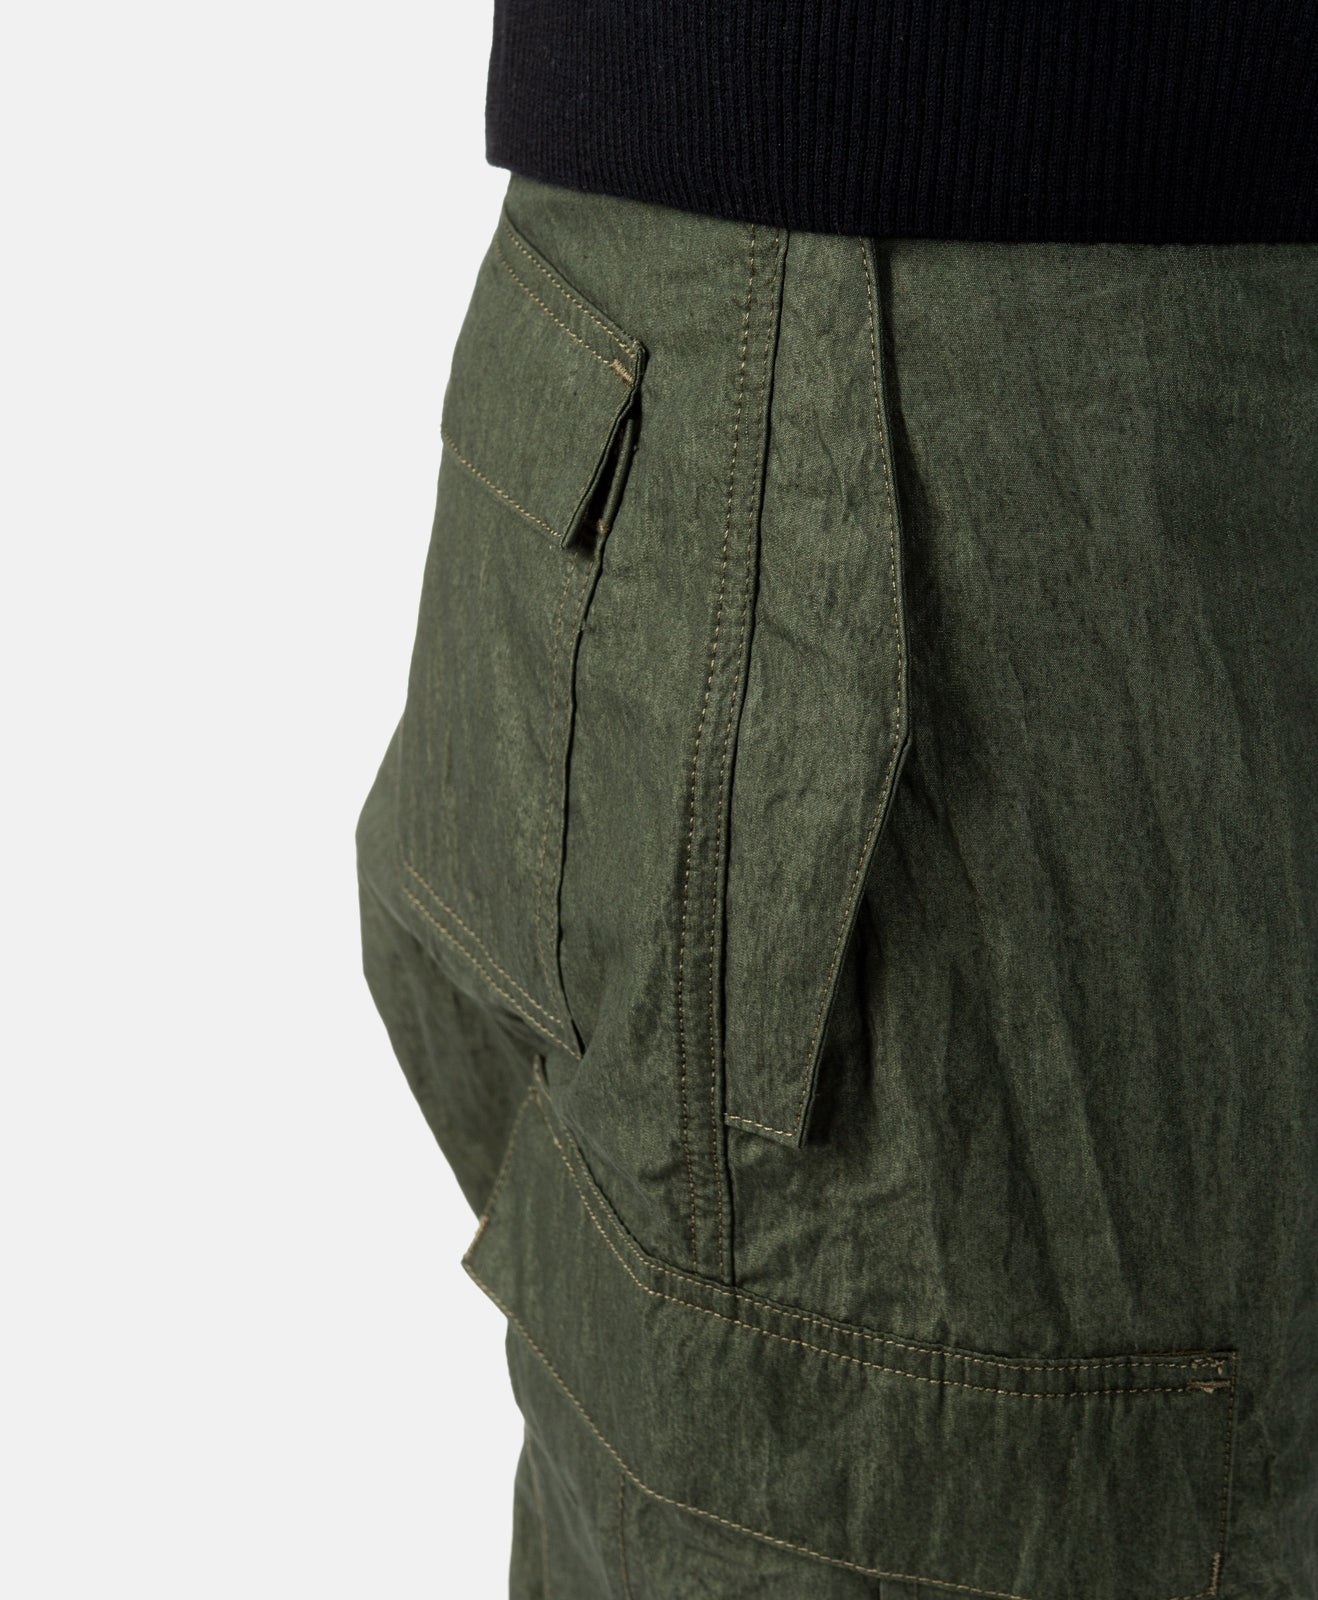 ae1dc5b6 Levis Made & Crafted Cargo Pant - Army Green | URBAN EXCESS.